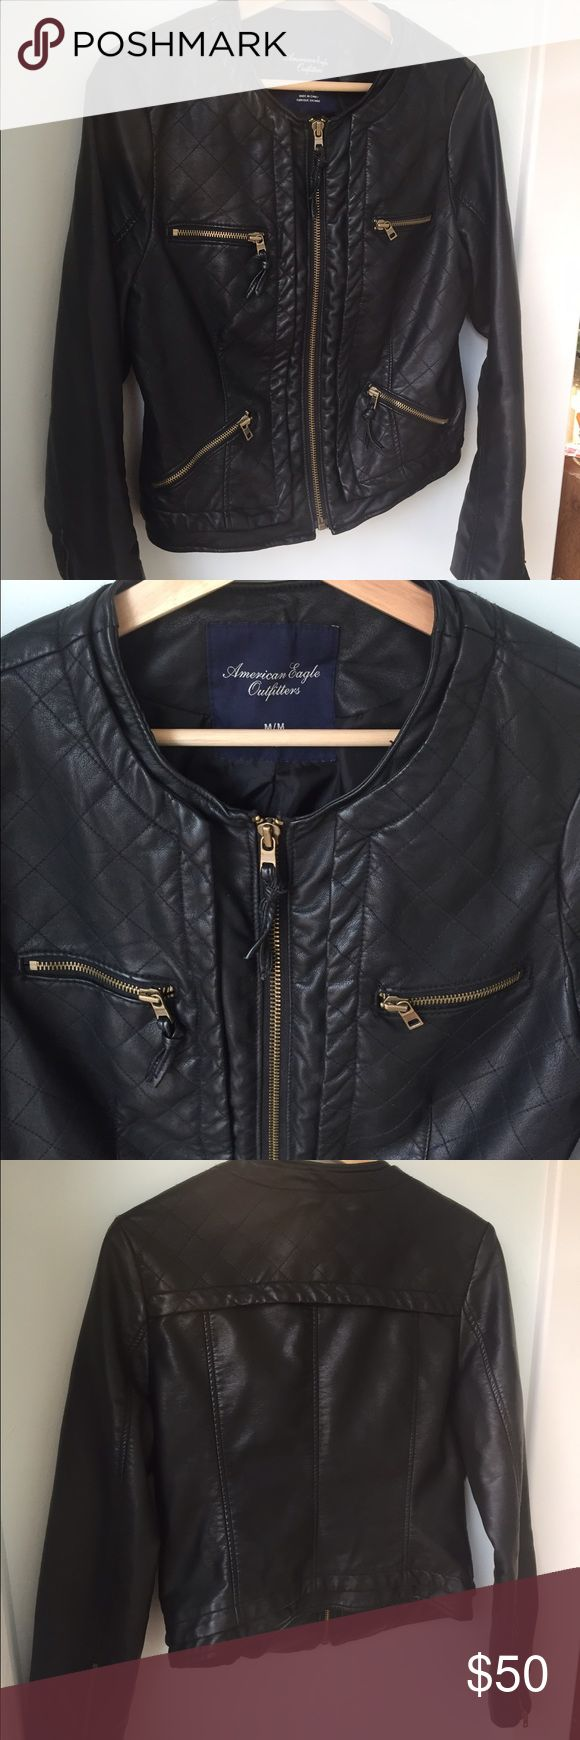 American Eagle Black Leather Jacket American Eagle Outfitters AEO Black Quilted Vegan Leather Jacket Size Medium  Black Collarless Vegan Leather Jacket Quilted Sholders Front & Back Yoke Zip Front 4 Zippered Pockets Zippered Sleeves Fully Lined American Eagle Outfitters Jackets & Coats